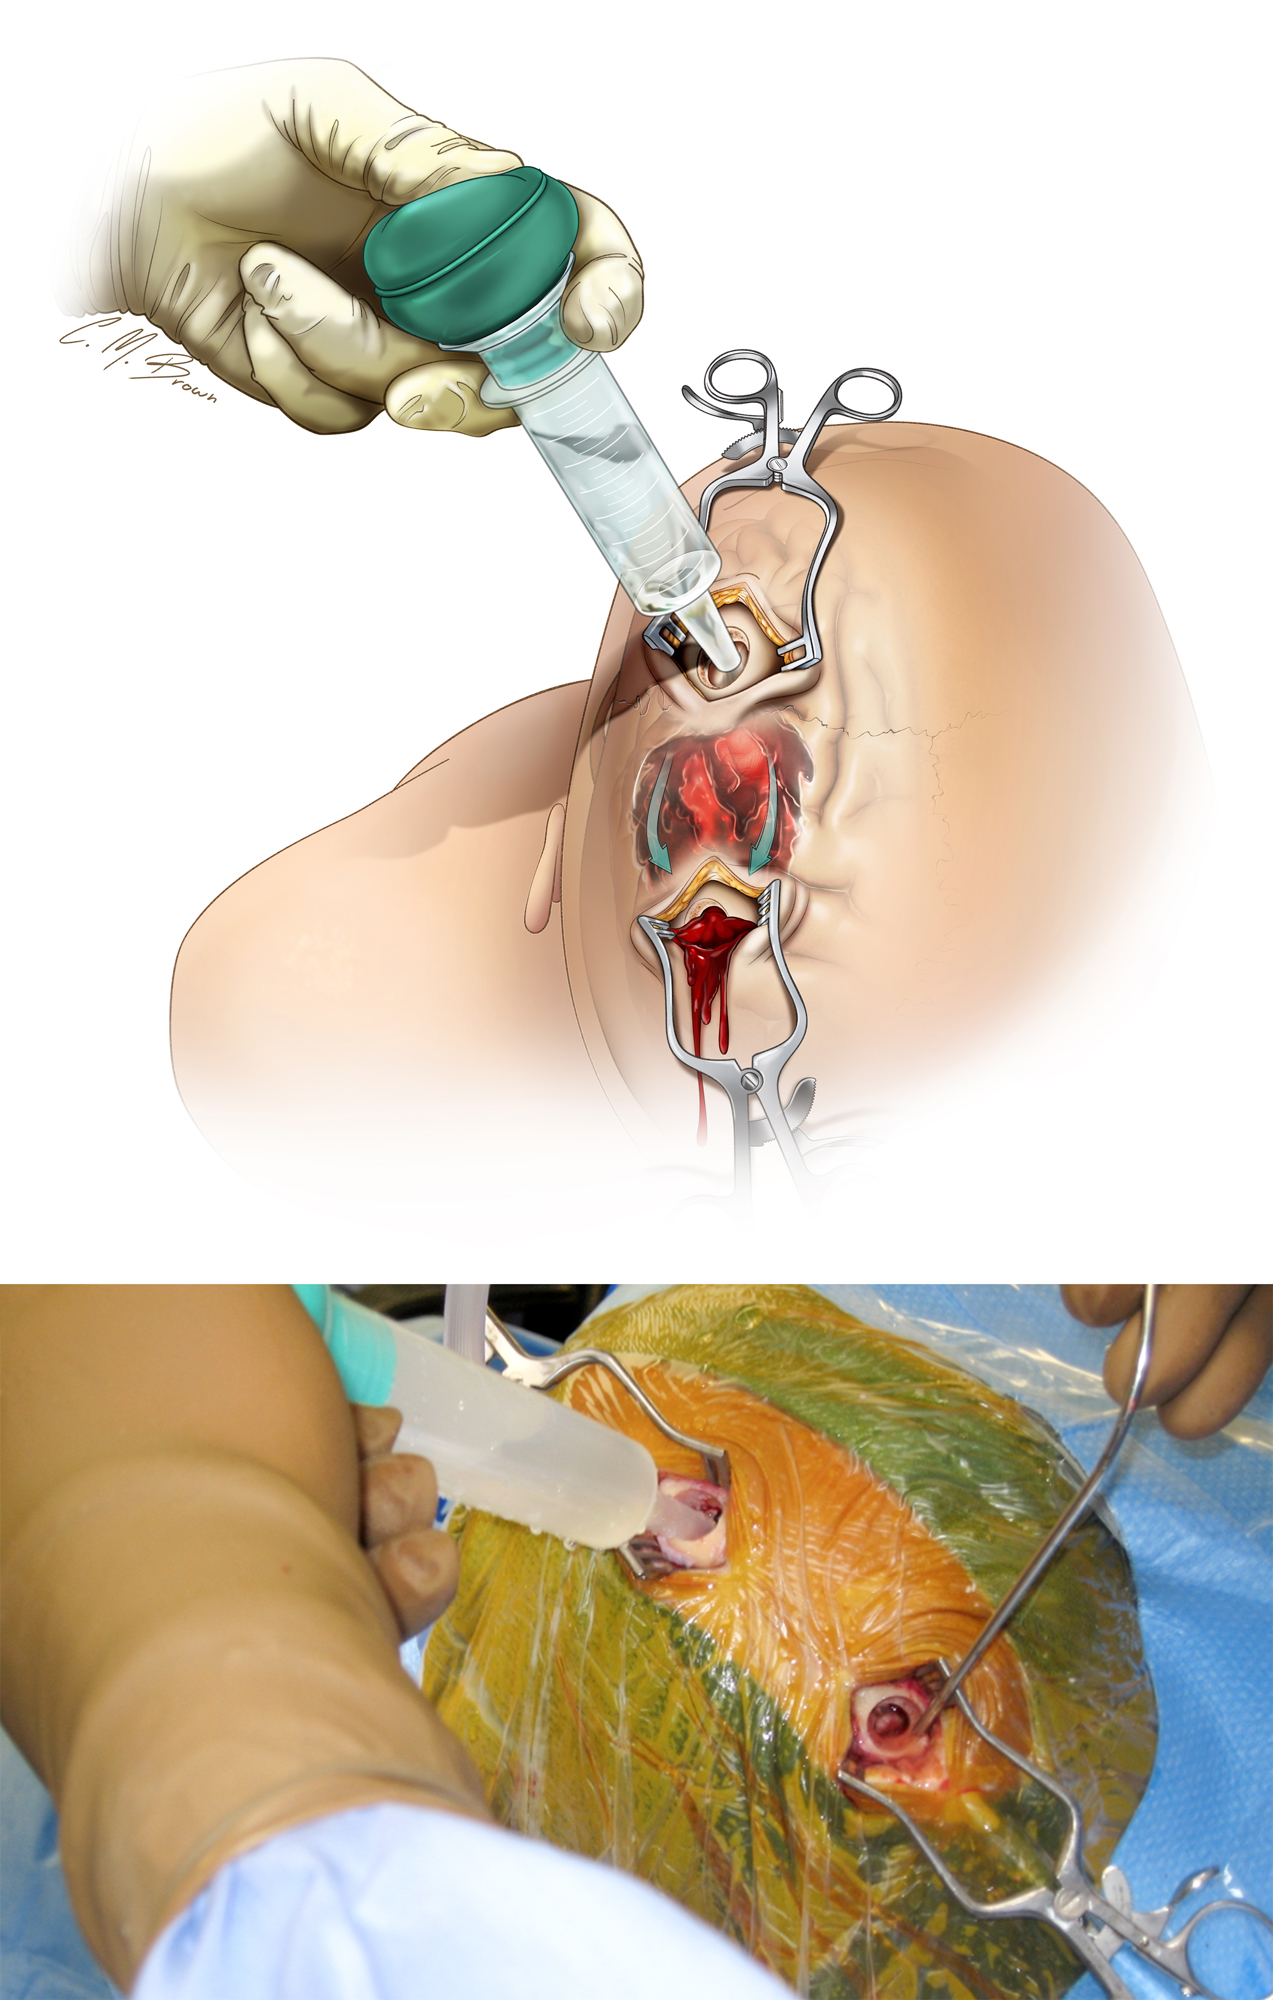 Figure 5: The above illustration and intraoperative photo demonstrate evacuation of a subacute subdural hematoma through the two-burr-hole technique using an ample amount of irrigation. The bulb irrigator is used through the anterior burr hole to displace the more solid components of the clot into the posterior burr hole. The top illustration demonstrates the movement of the hematoma subdurally, while the bottom image shows the surgeon's perspective. I inspect the surface of the brain through the burr holes and carefully attempt to fenestrate the easily reachable septations to allow free flow of the irrigant between the anterior and posterior burr holes. If the surface of the brain is not visible, the septations should be further fenestrated through the limited exposure if this maneuver is deemed safe. The movement of the brain toward the calvarium is a good prognostic factor, another confirmation that the hematoma has been adequately evacuated.